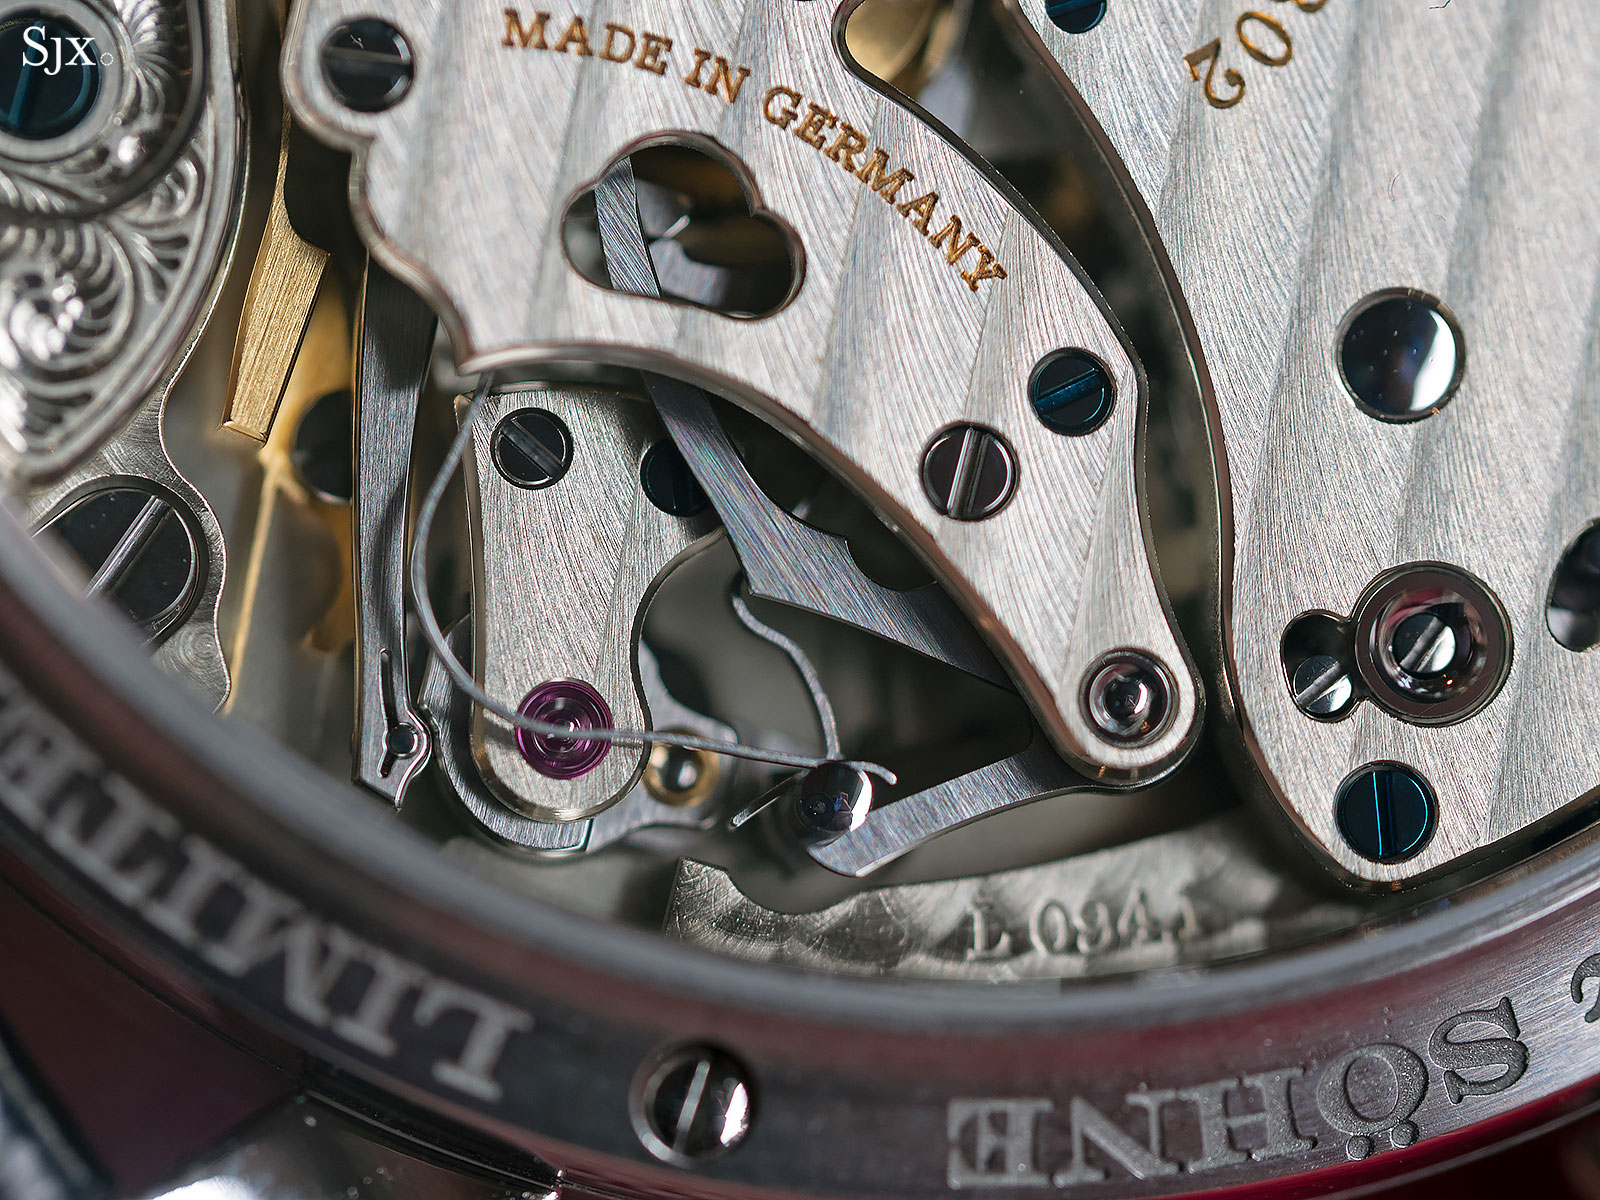 Richard Lange Jumping Seconds Watch review 5